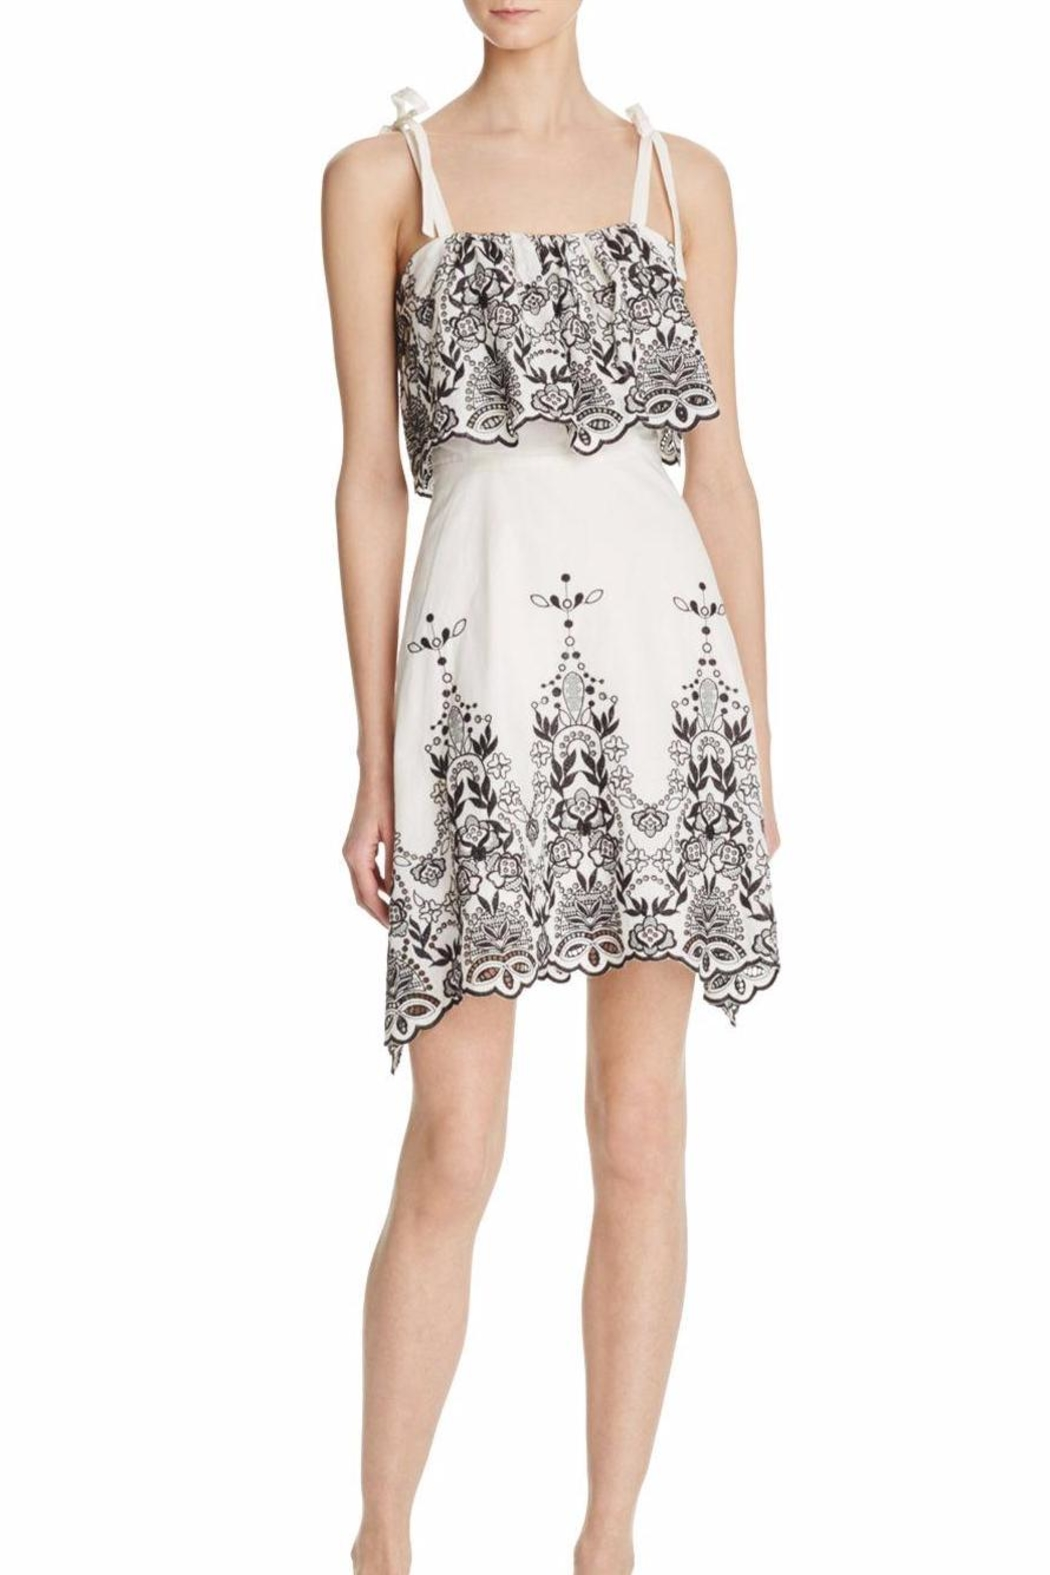 Parker Nia Eyelet Dress - Front Cropped Image